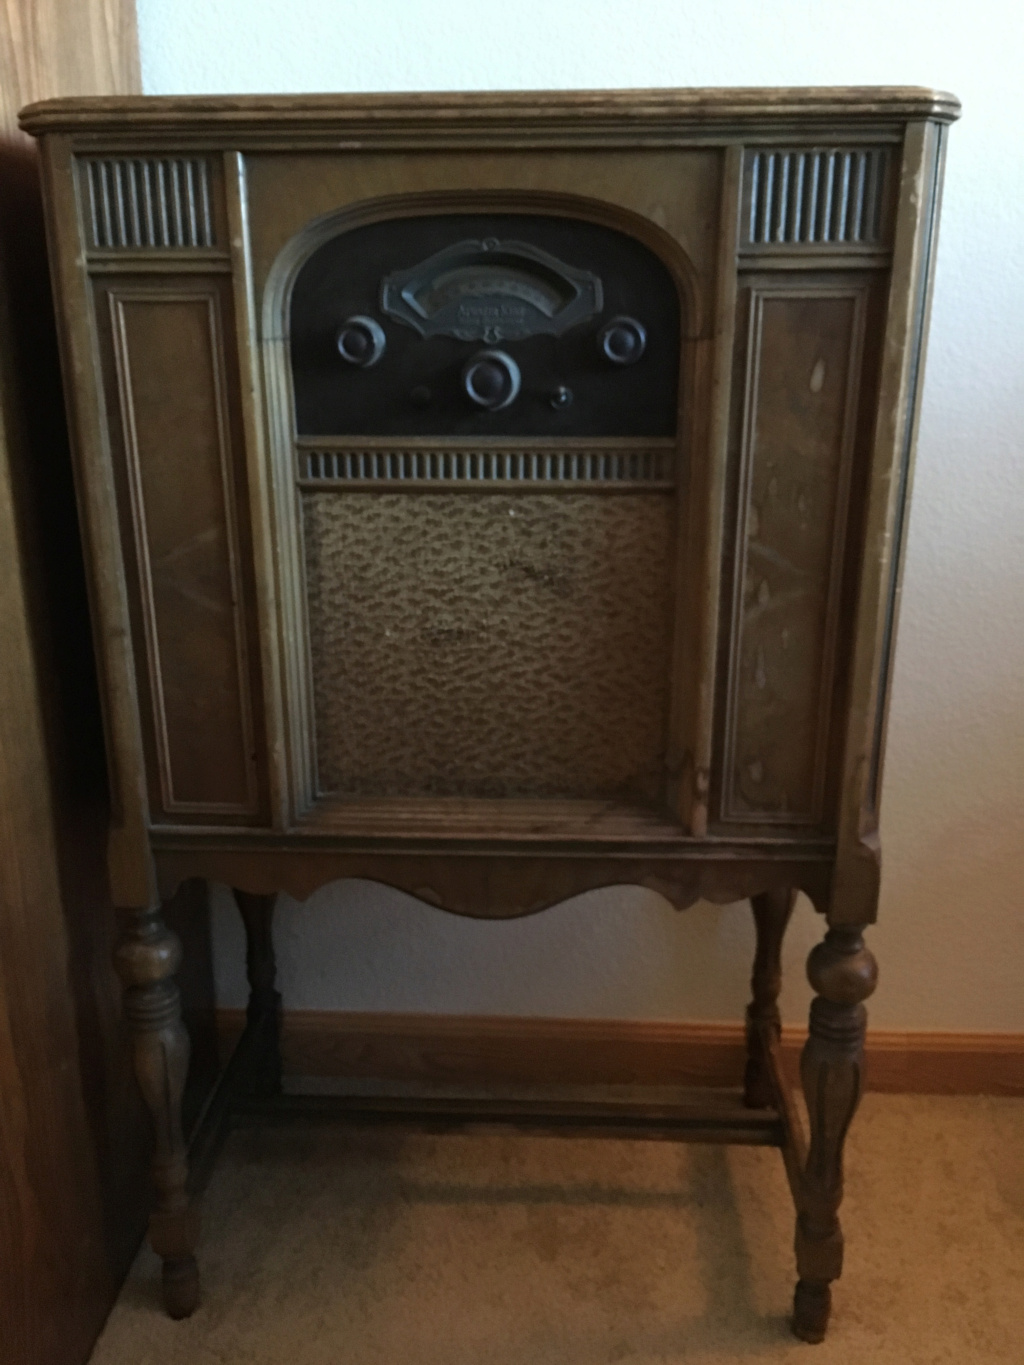 Antique Radio Restoration Atwate11